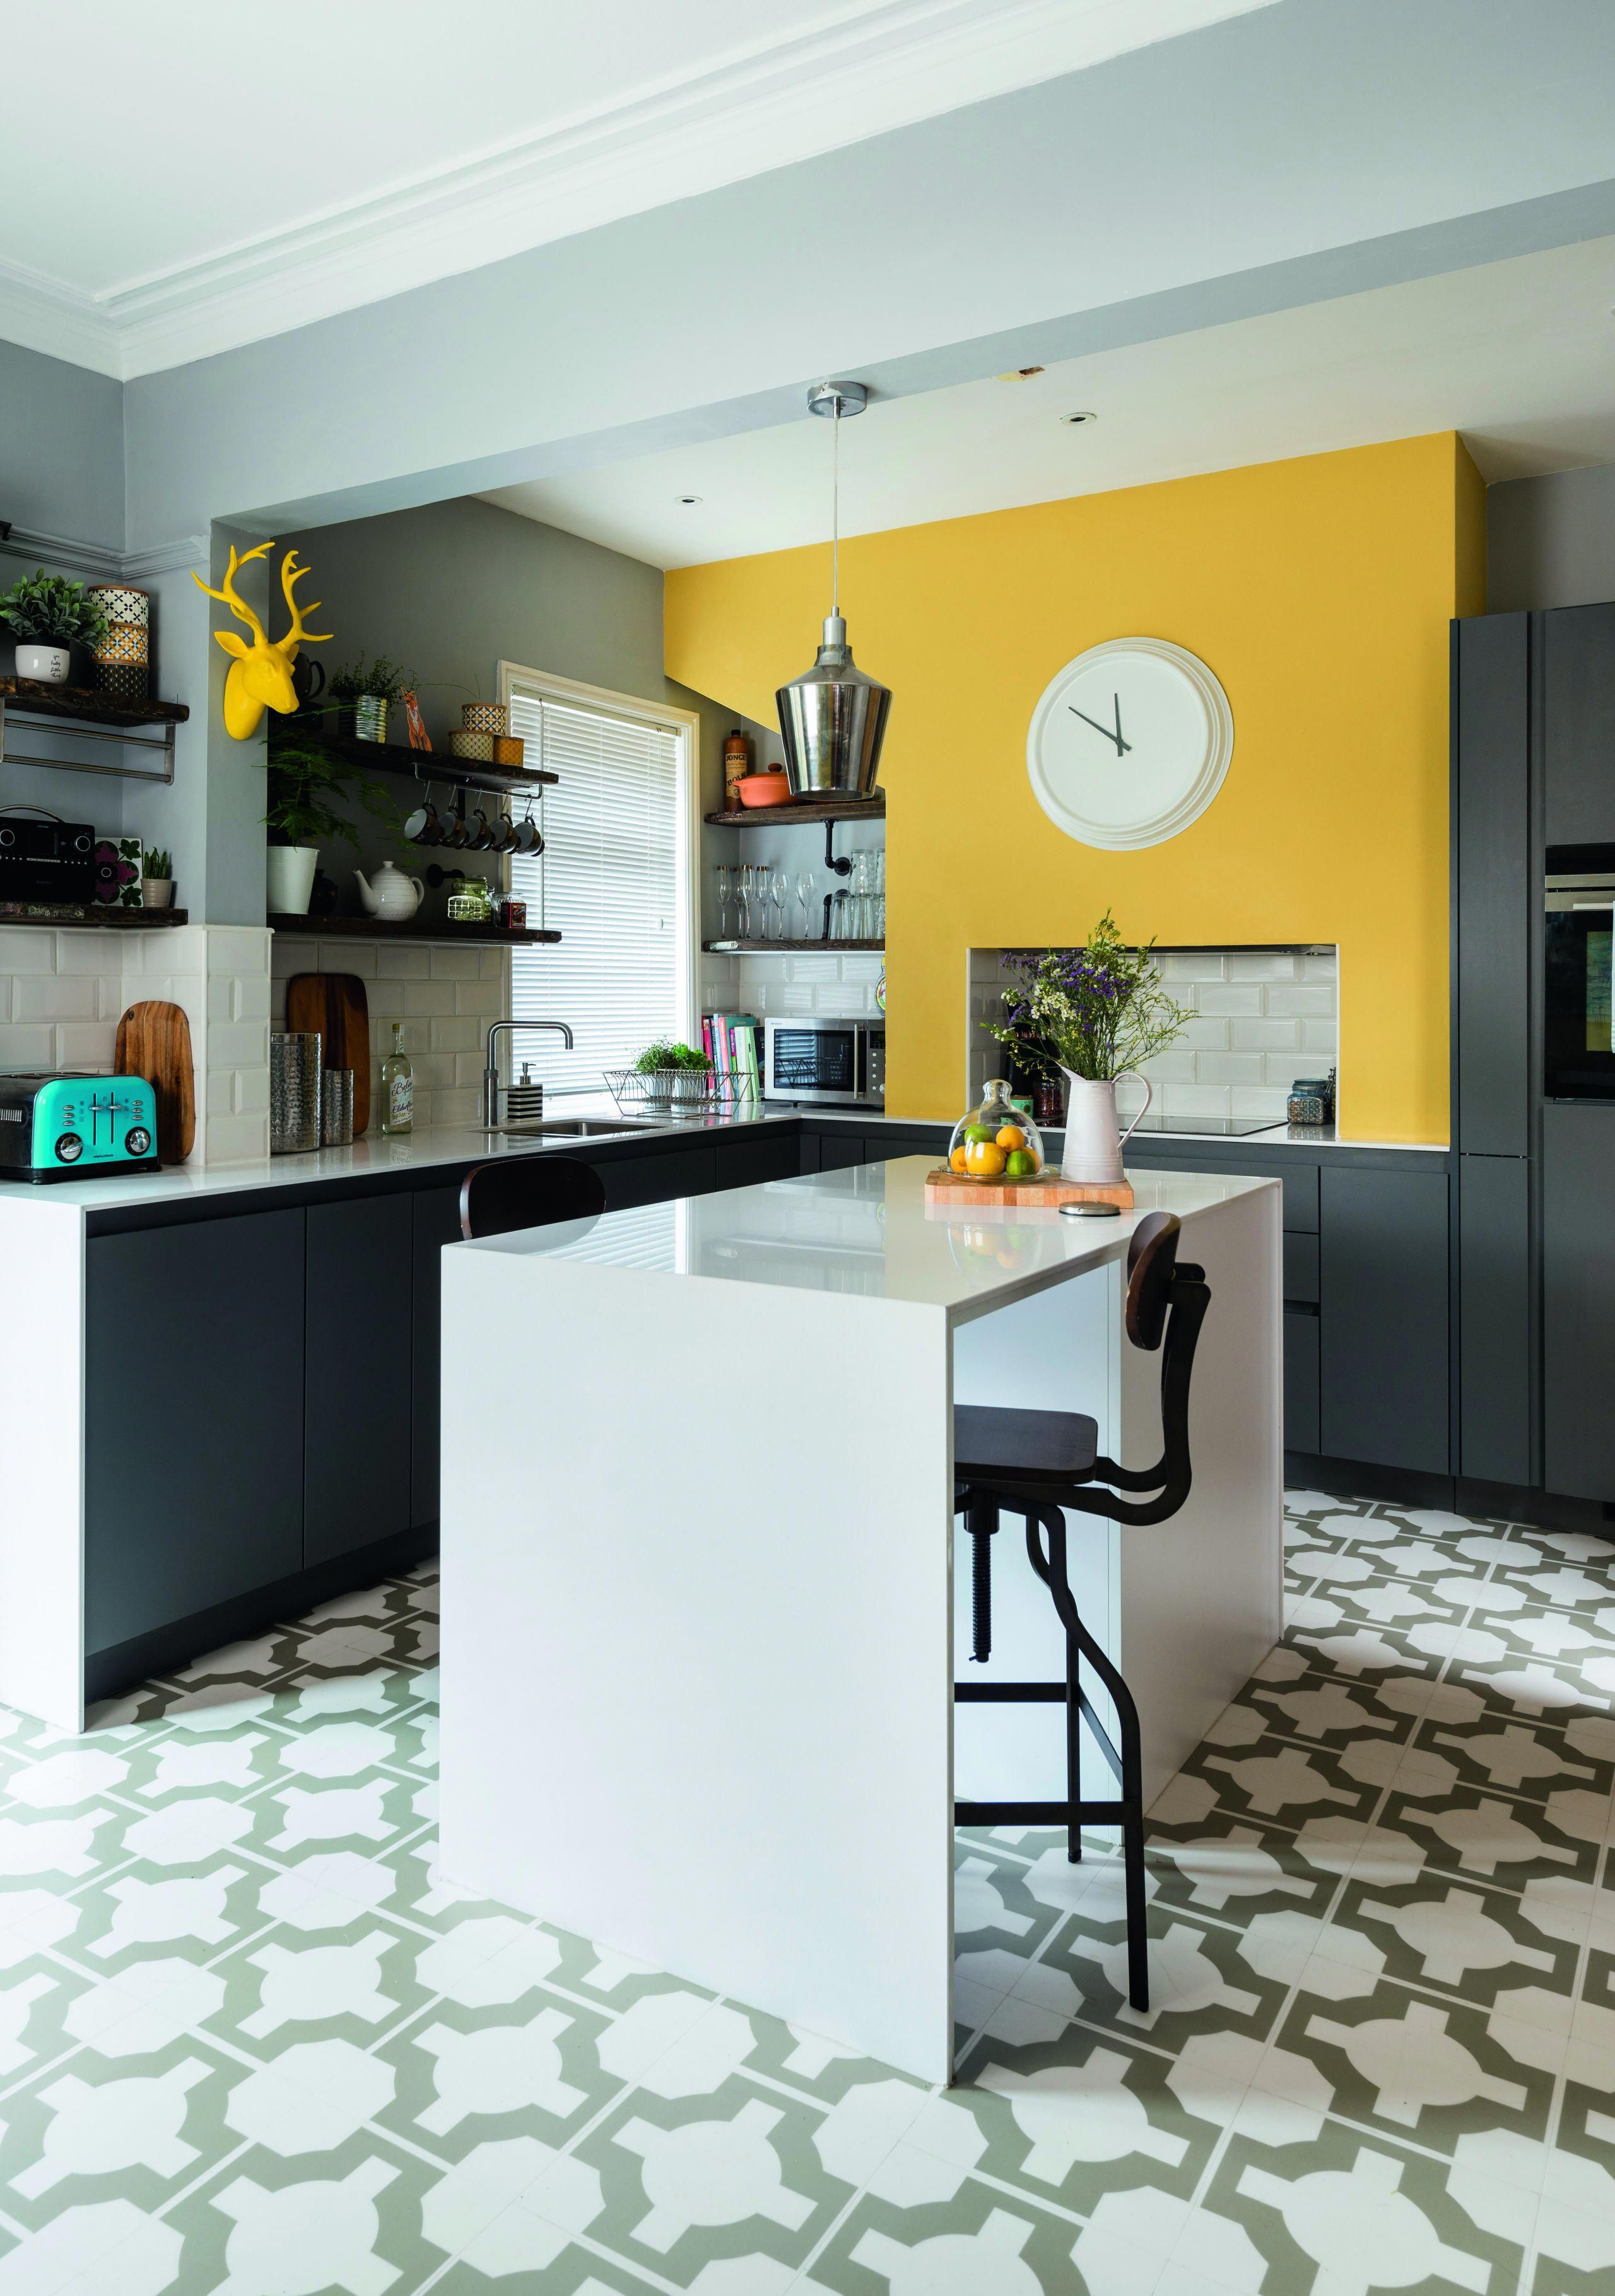 4 Rules To Follow For A Good Kitchen Kitchen Cabinets Color